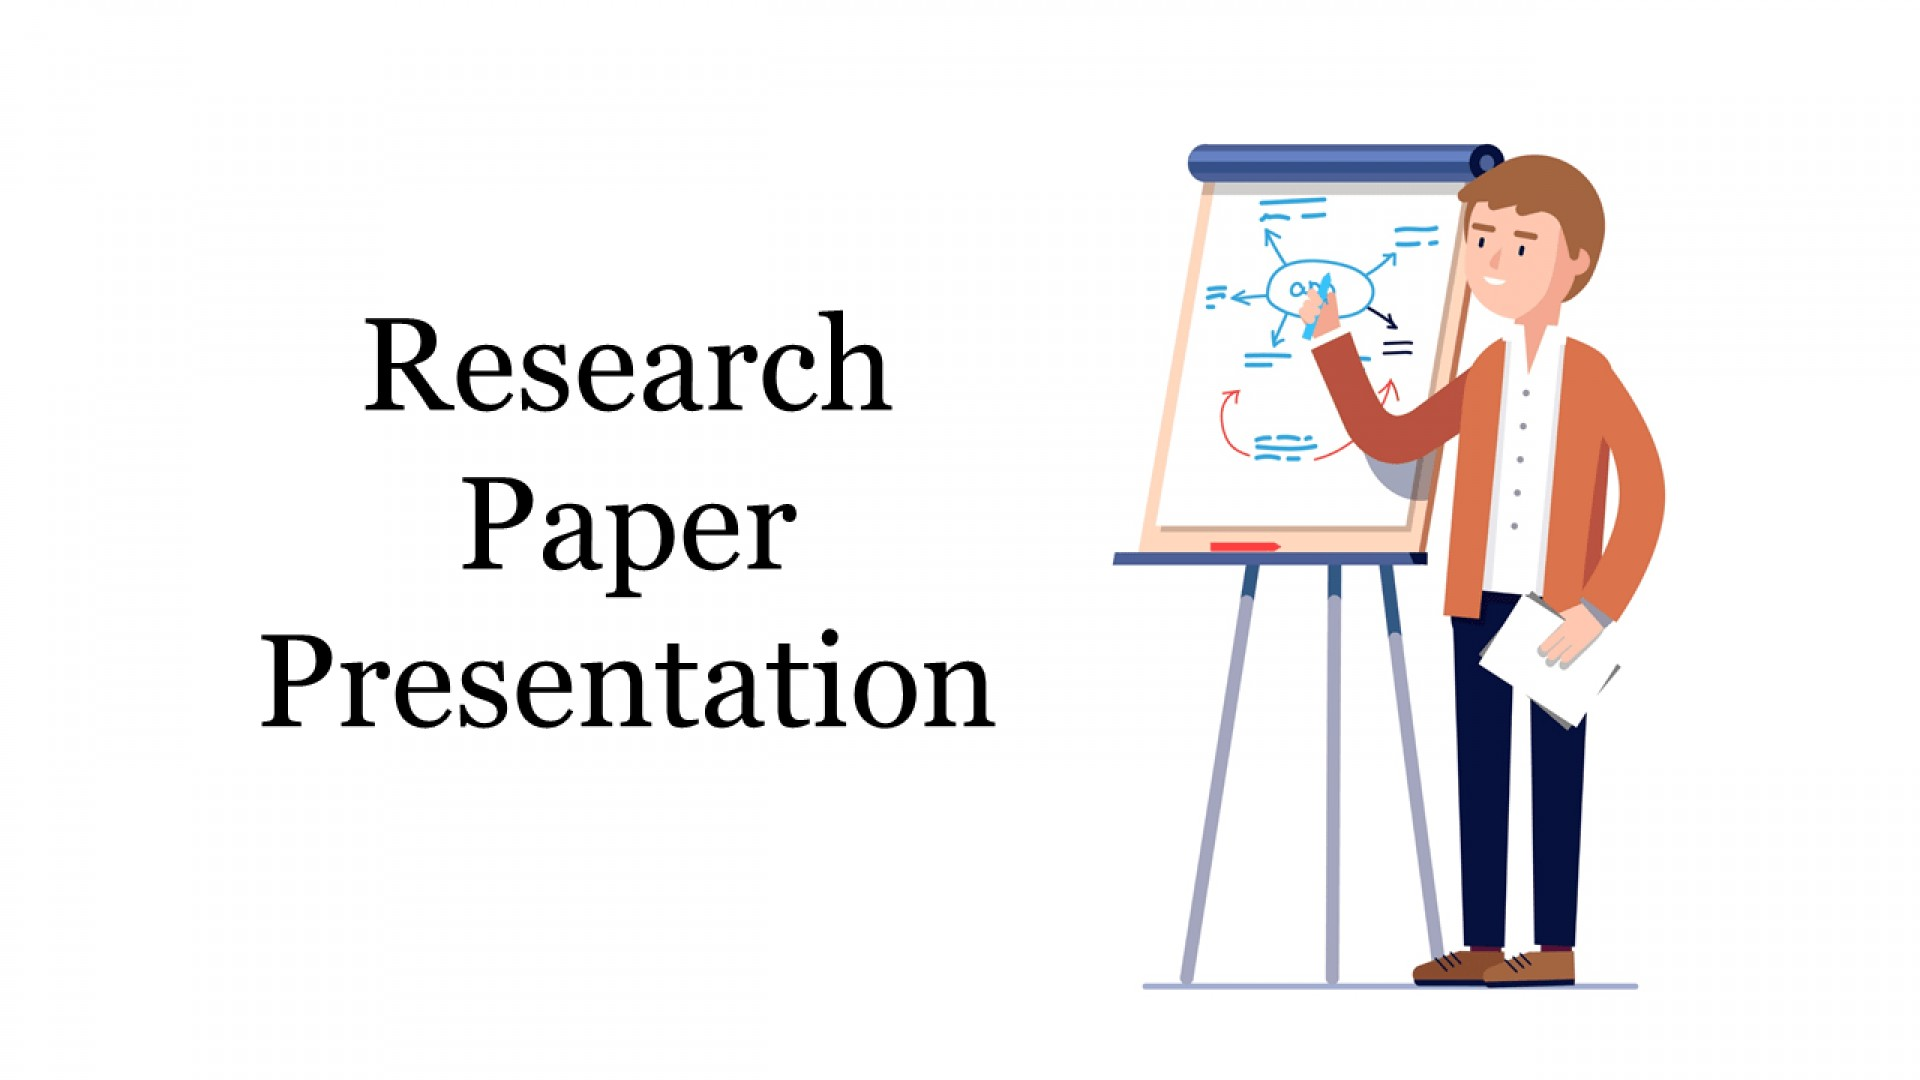 008 Research Paper Presentation Ppt Templates Phenomenal For Powerpoint Format 1920